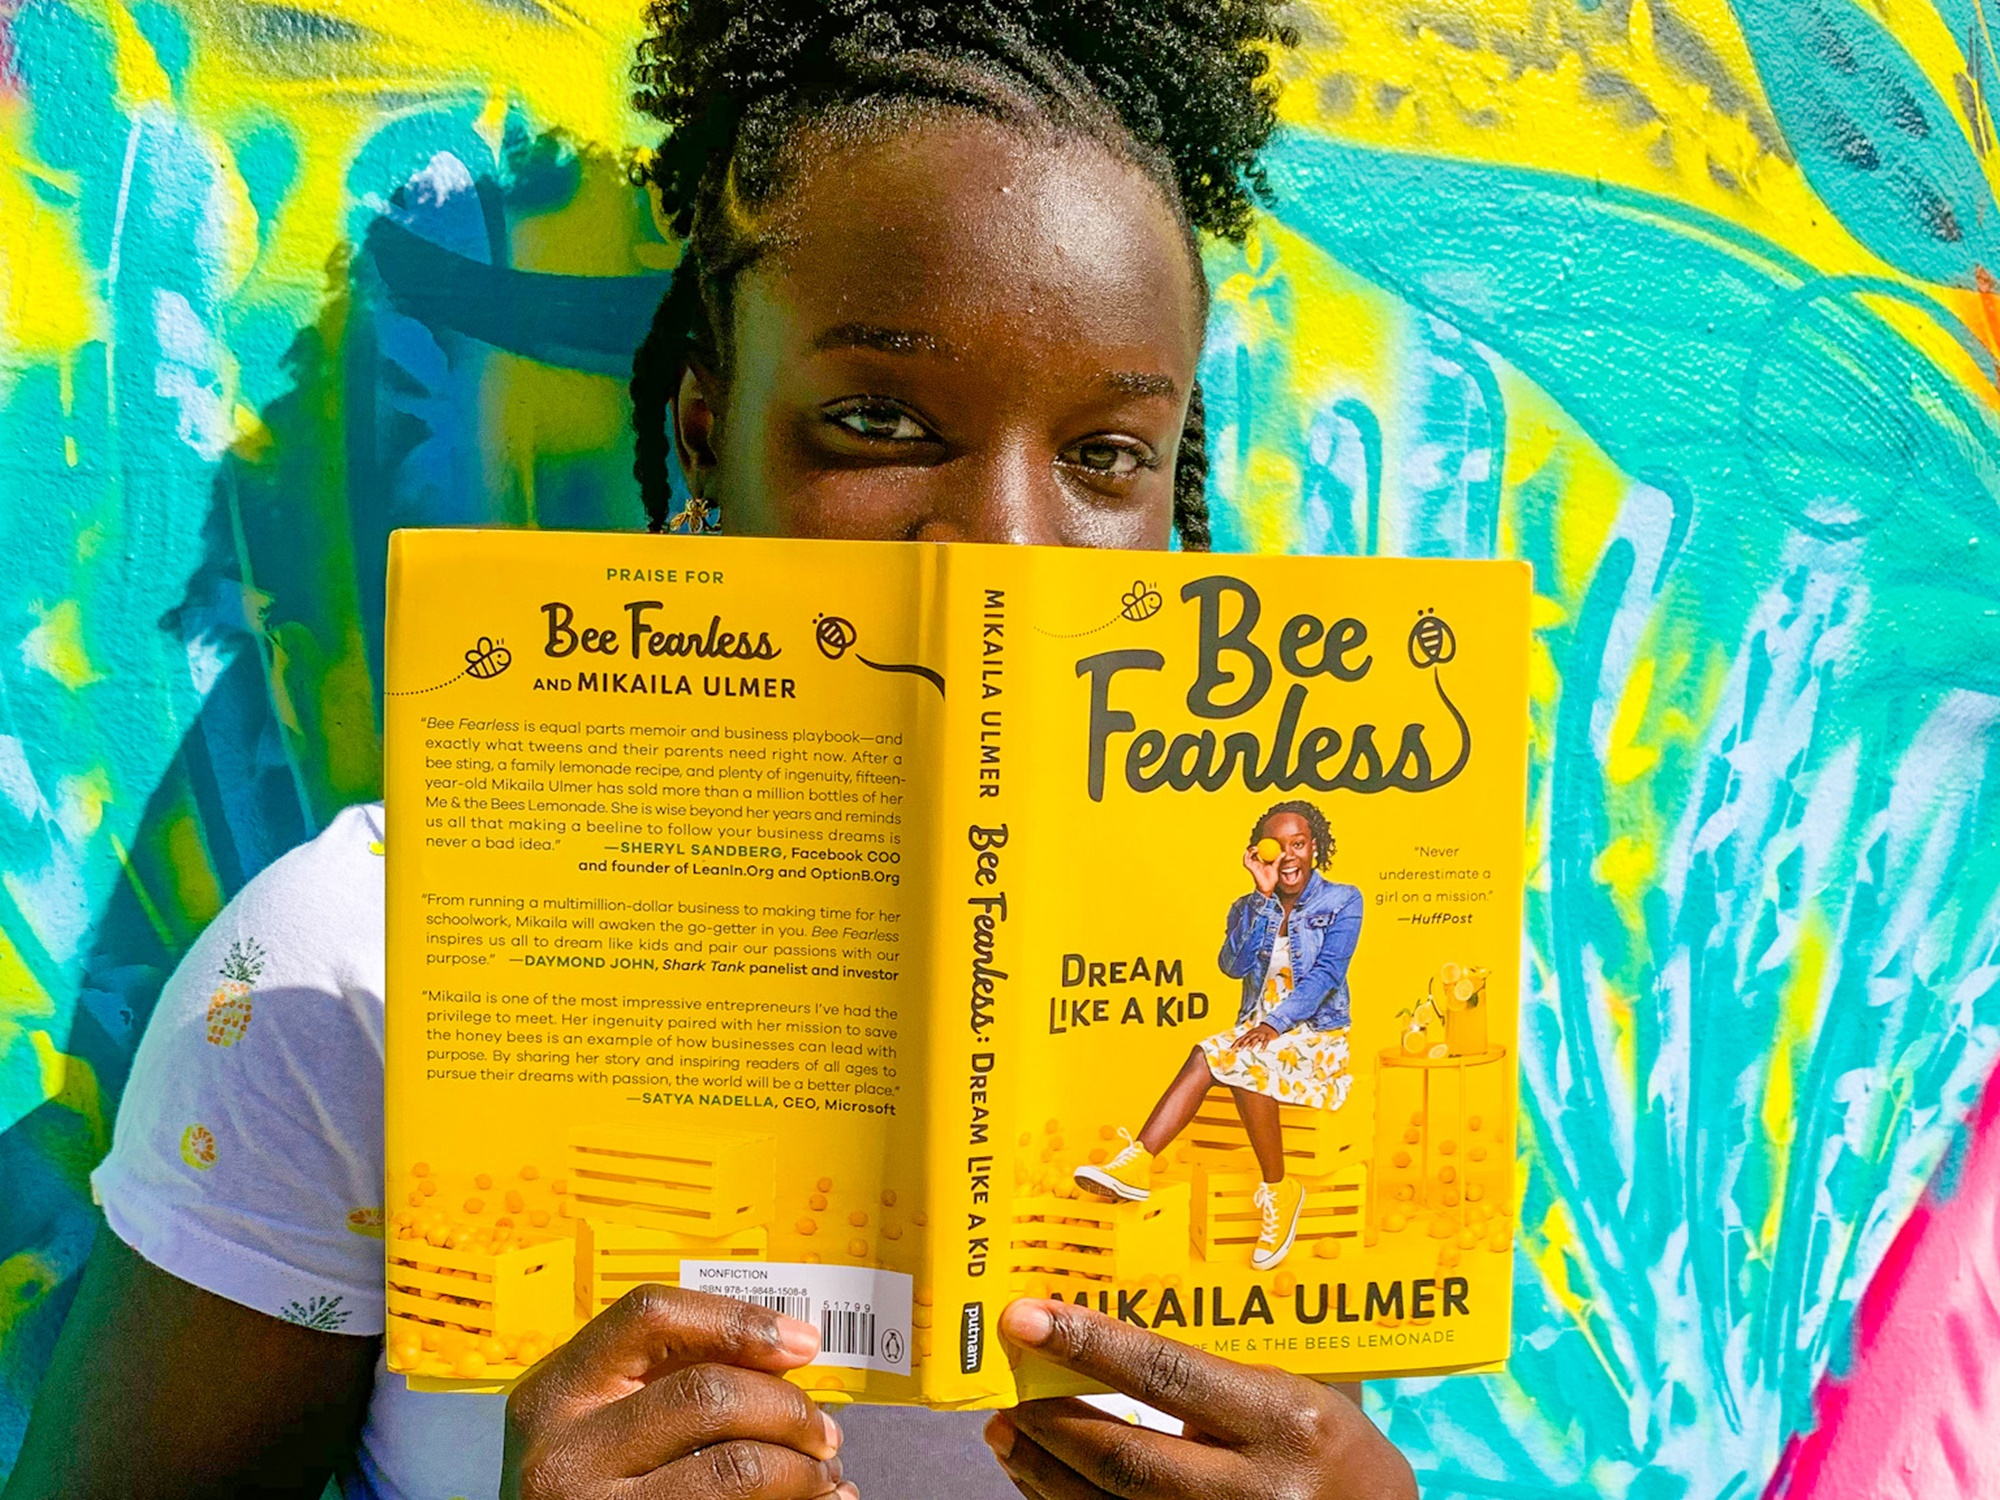 Mikaila Ulmer Bee Fearless Dream Like a Kid Me & the Bees